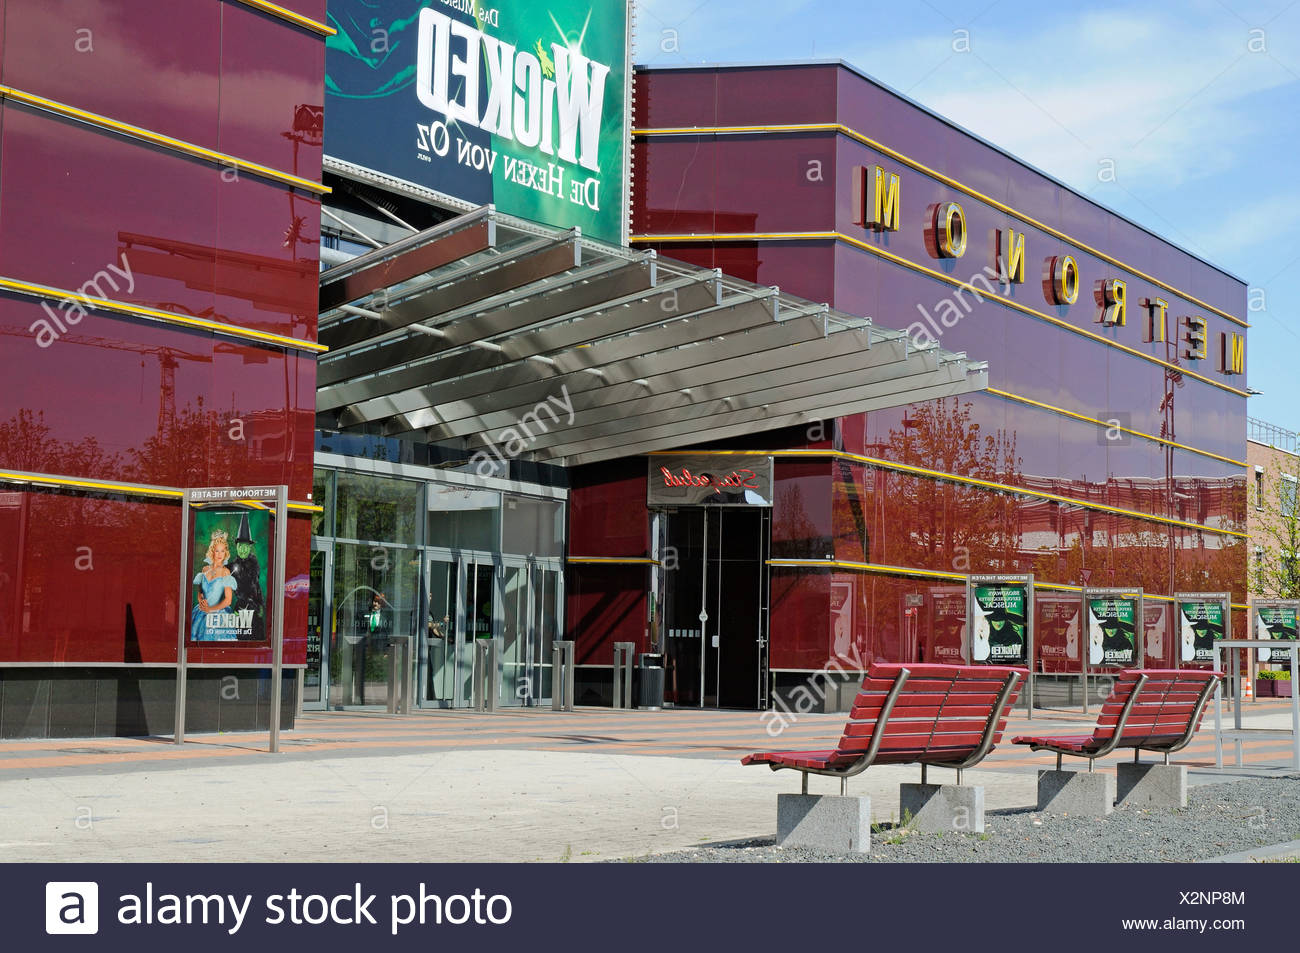 Metronom, musical theater, shopping center, Centro, Neue Mitte district, Oberhausen, Ruhrgebiet area, North Rhine-Westphalia - Stock Image